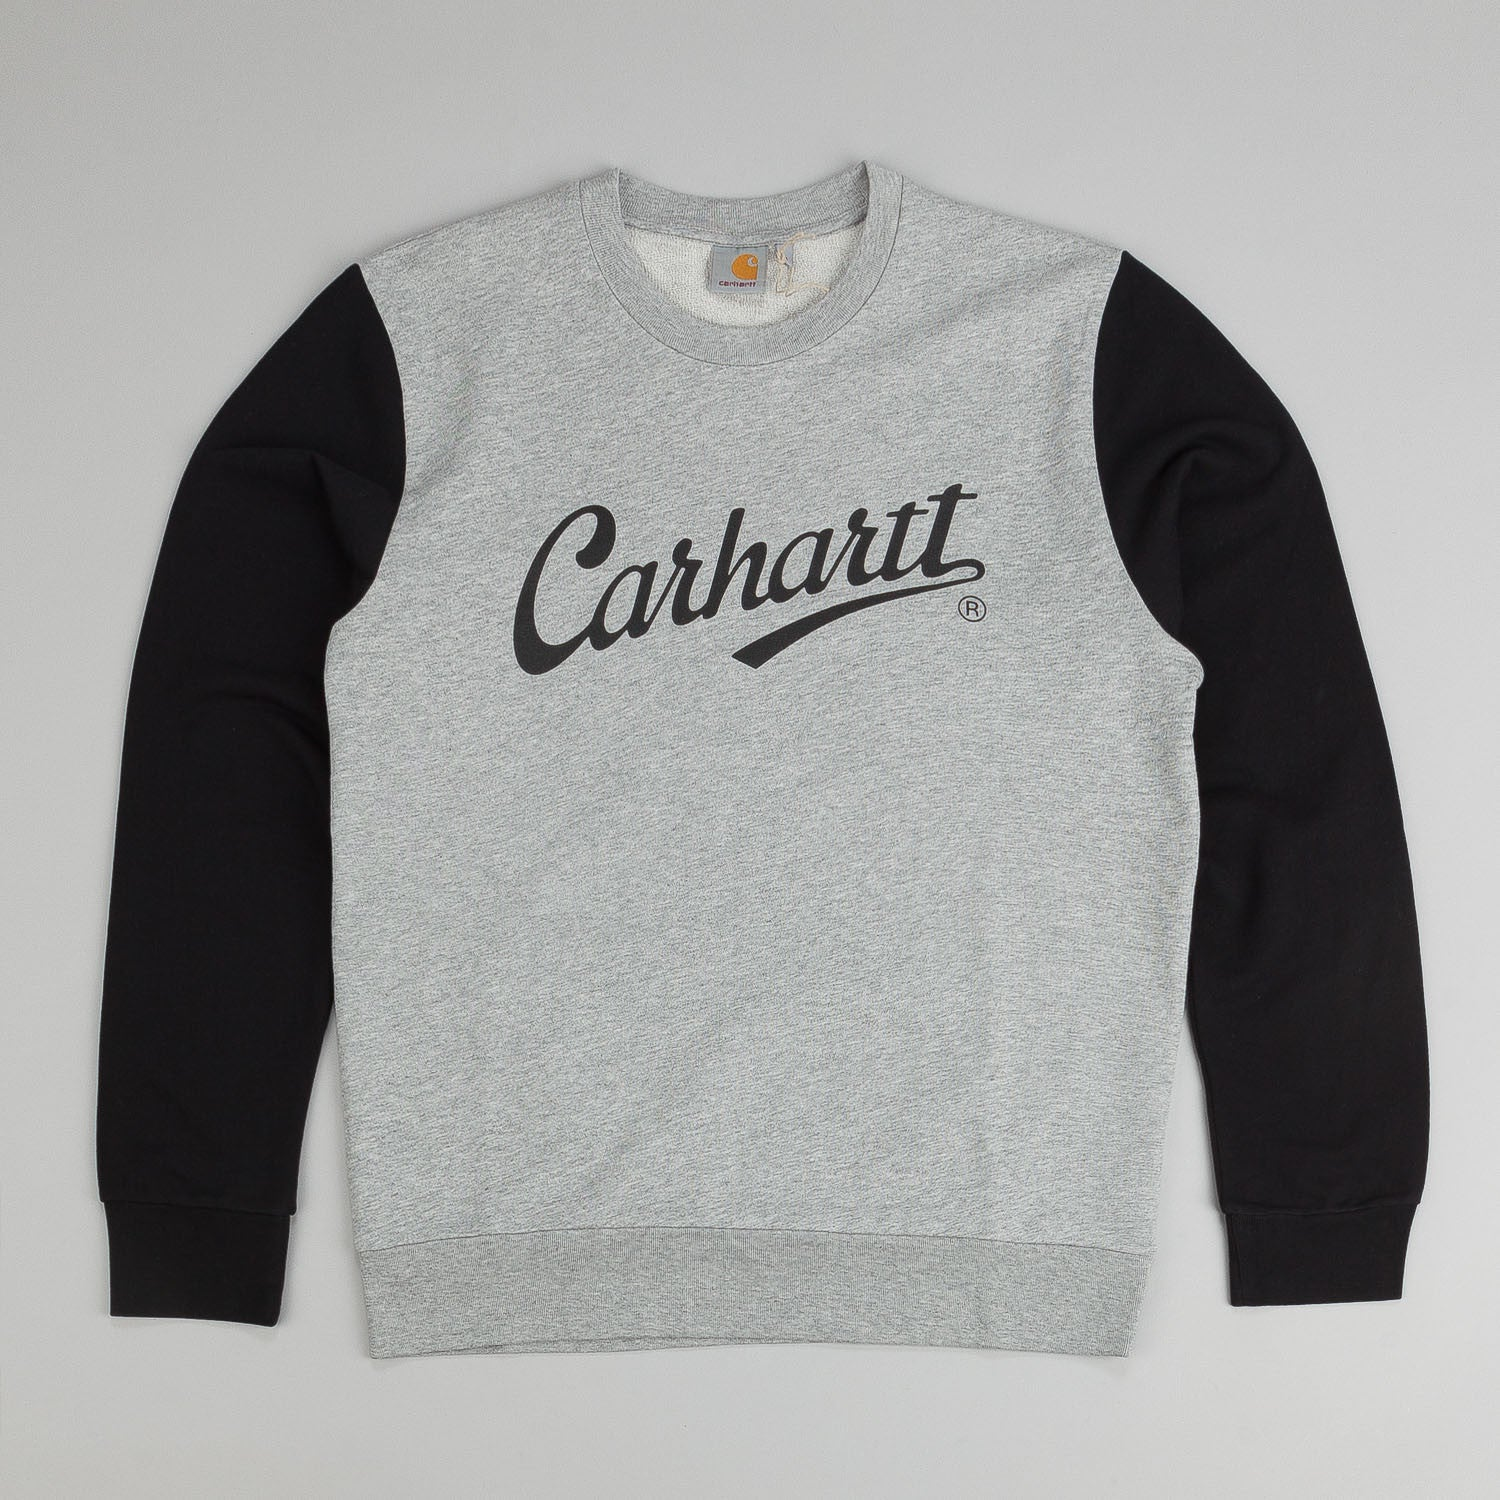 Carhartt League Crew Neck Sweatshirt - Grey Heather / Black